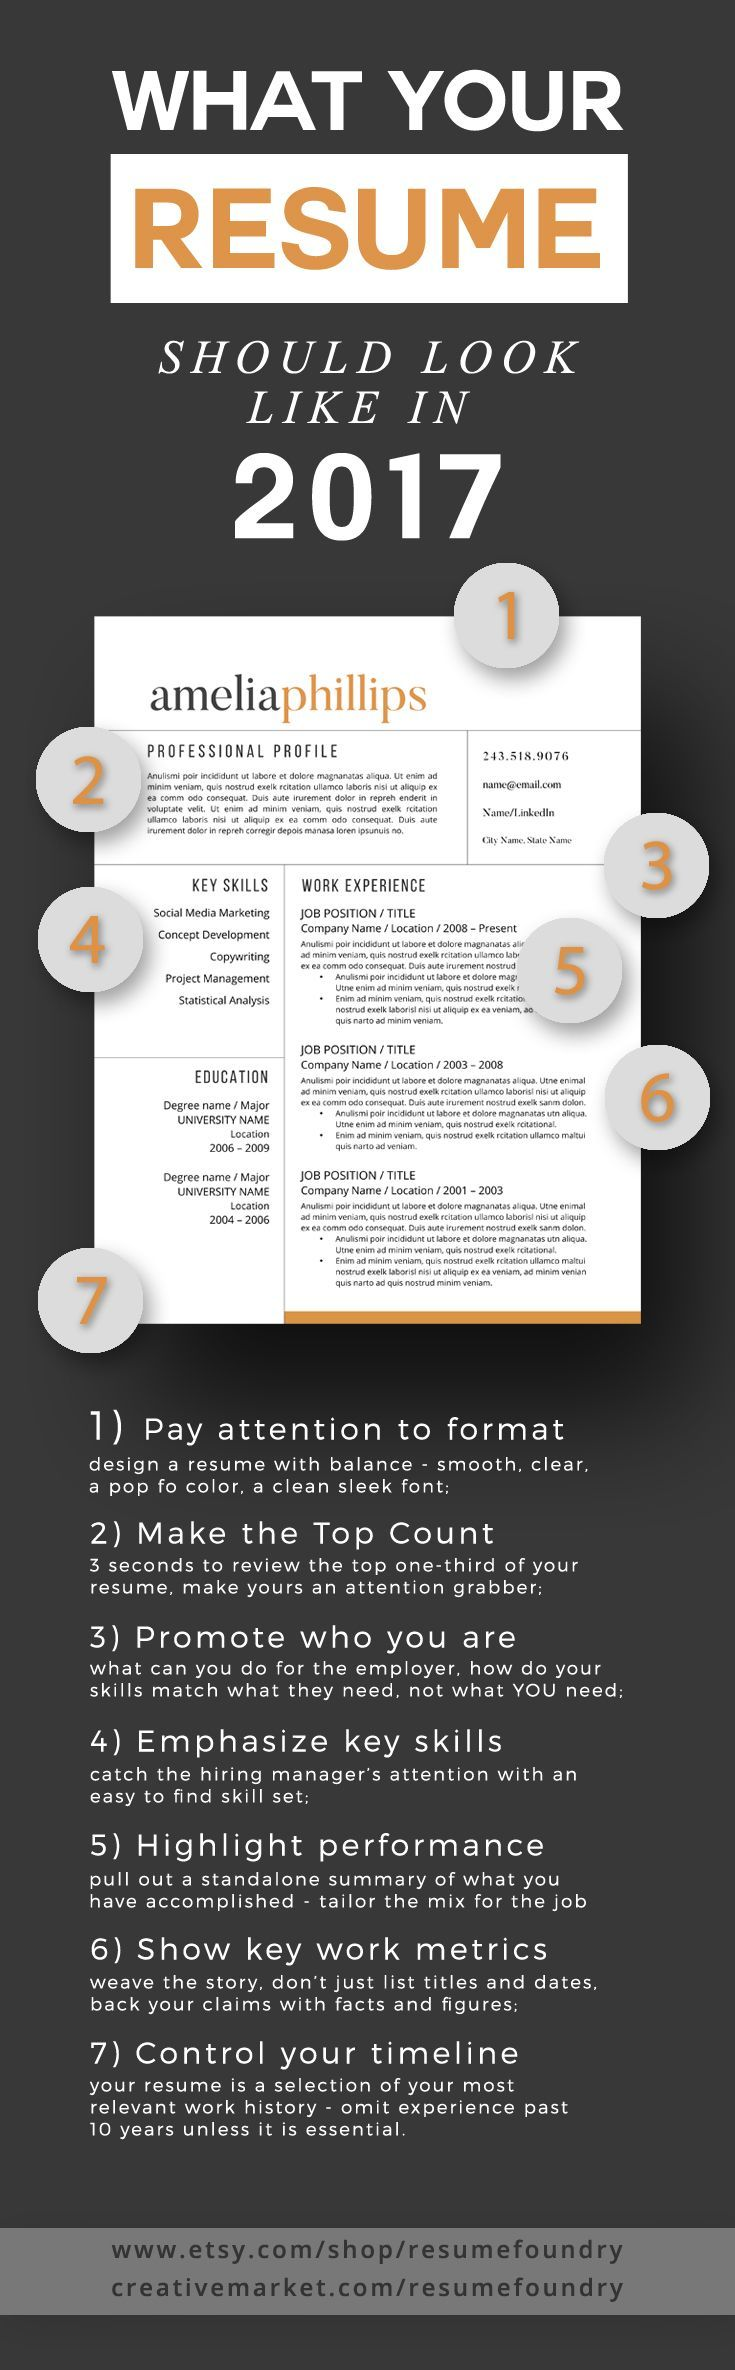 Resume tips - what your resume should look like in 2017